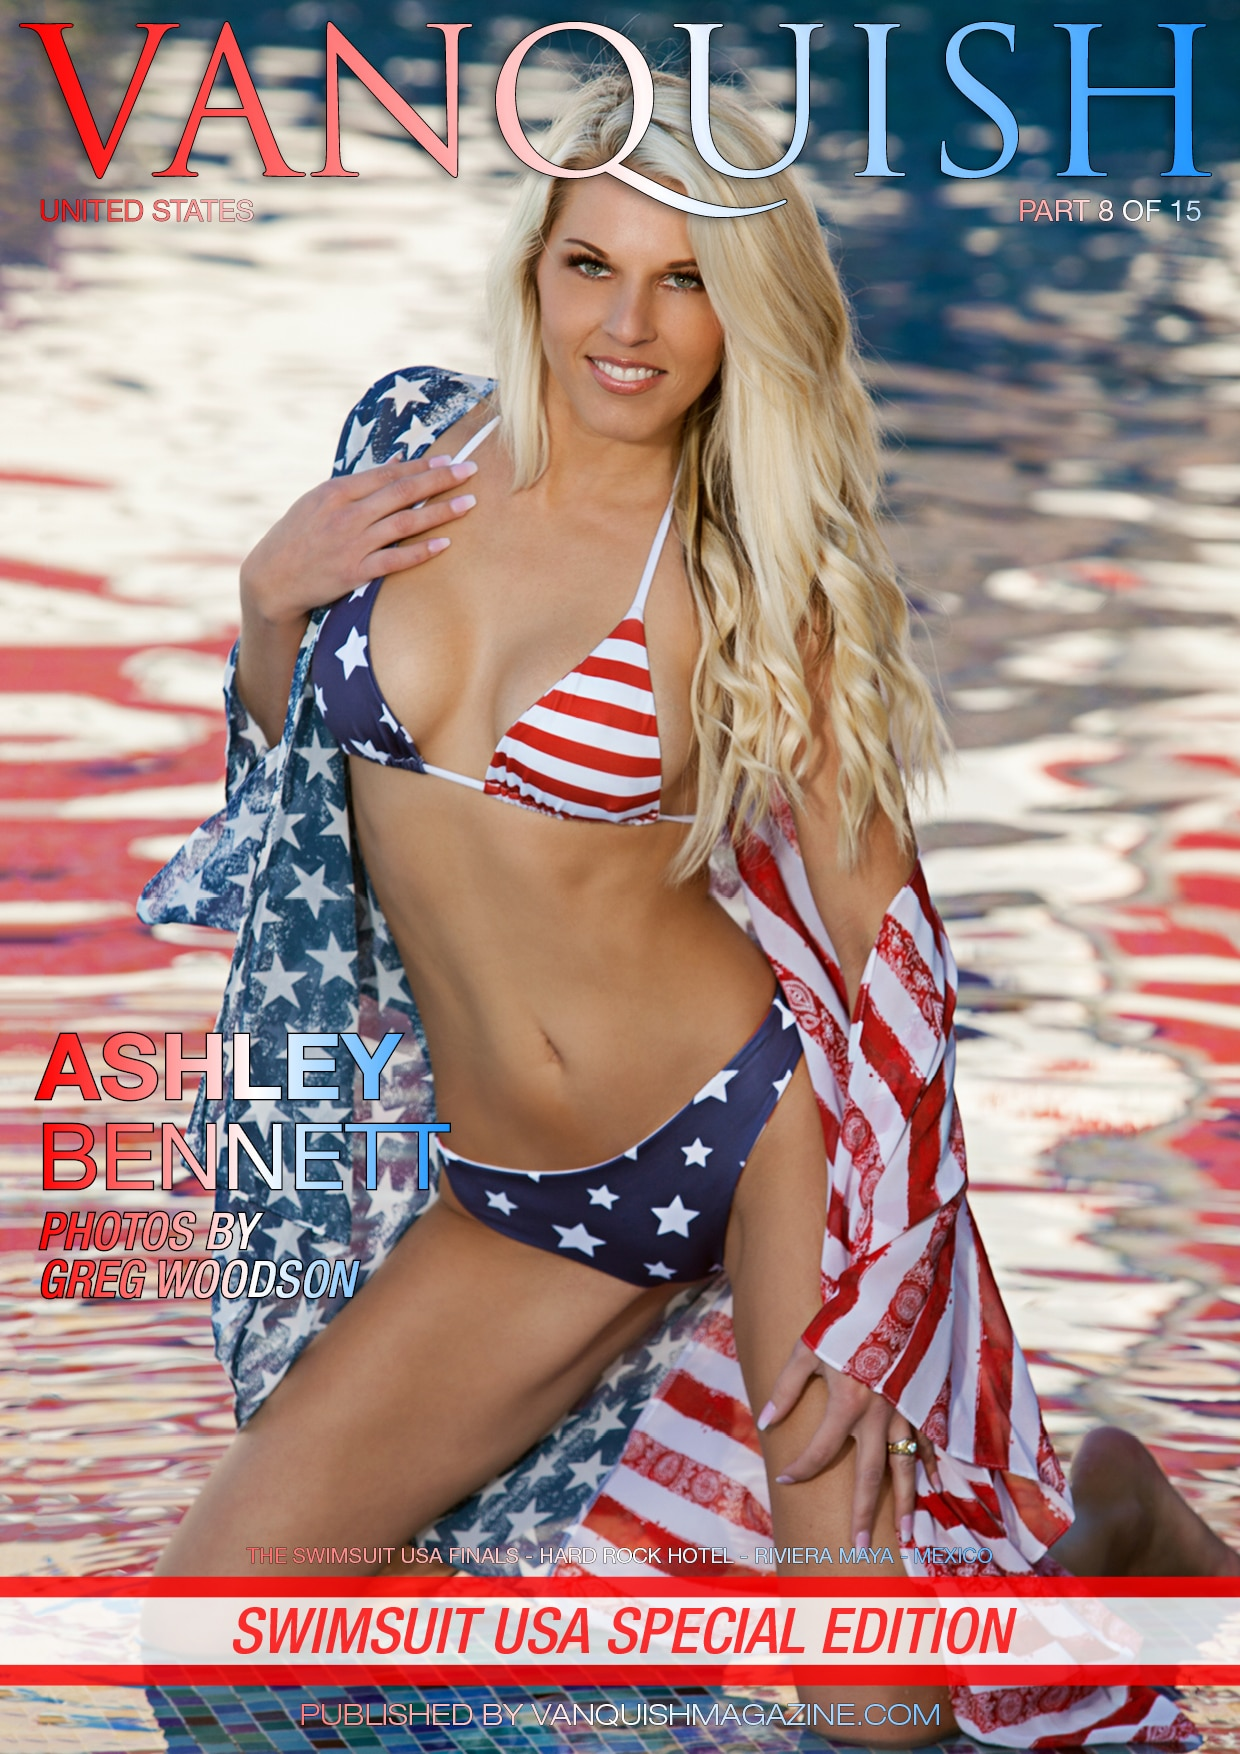 Vanquish Magazine - Swimsuit USA - Part 8 - Ashley Bennett 1